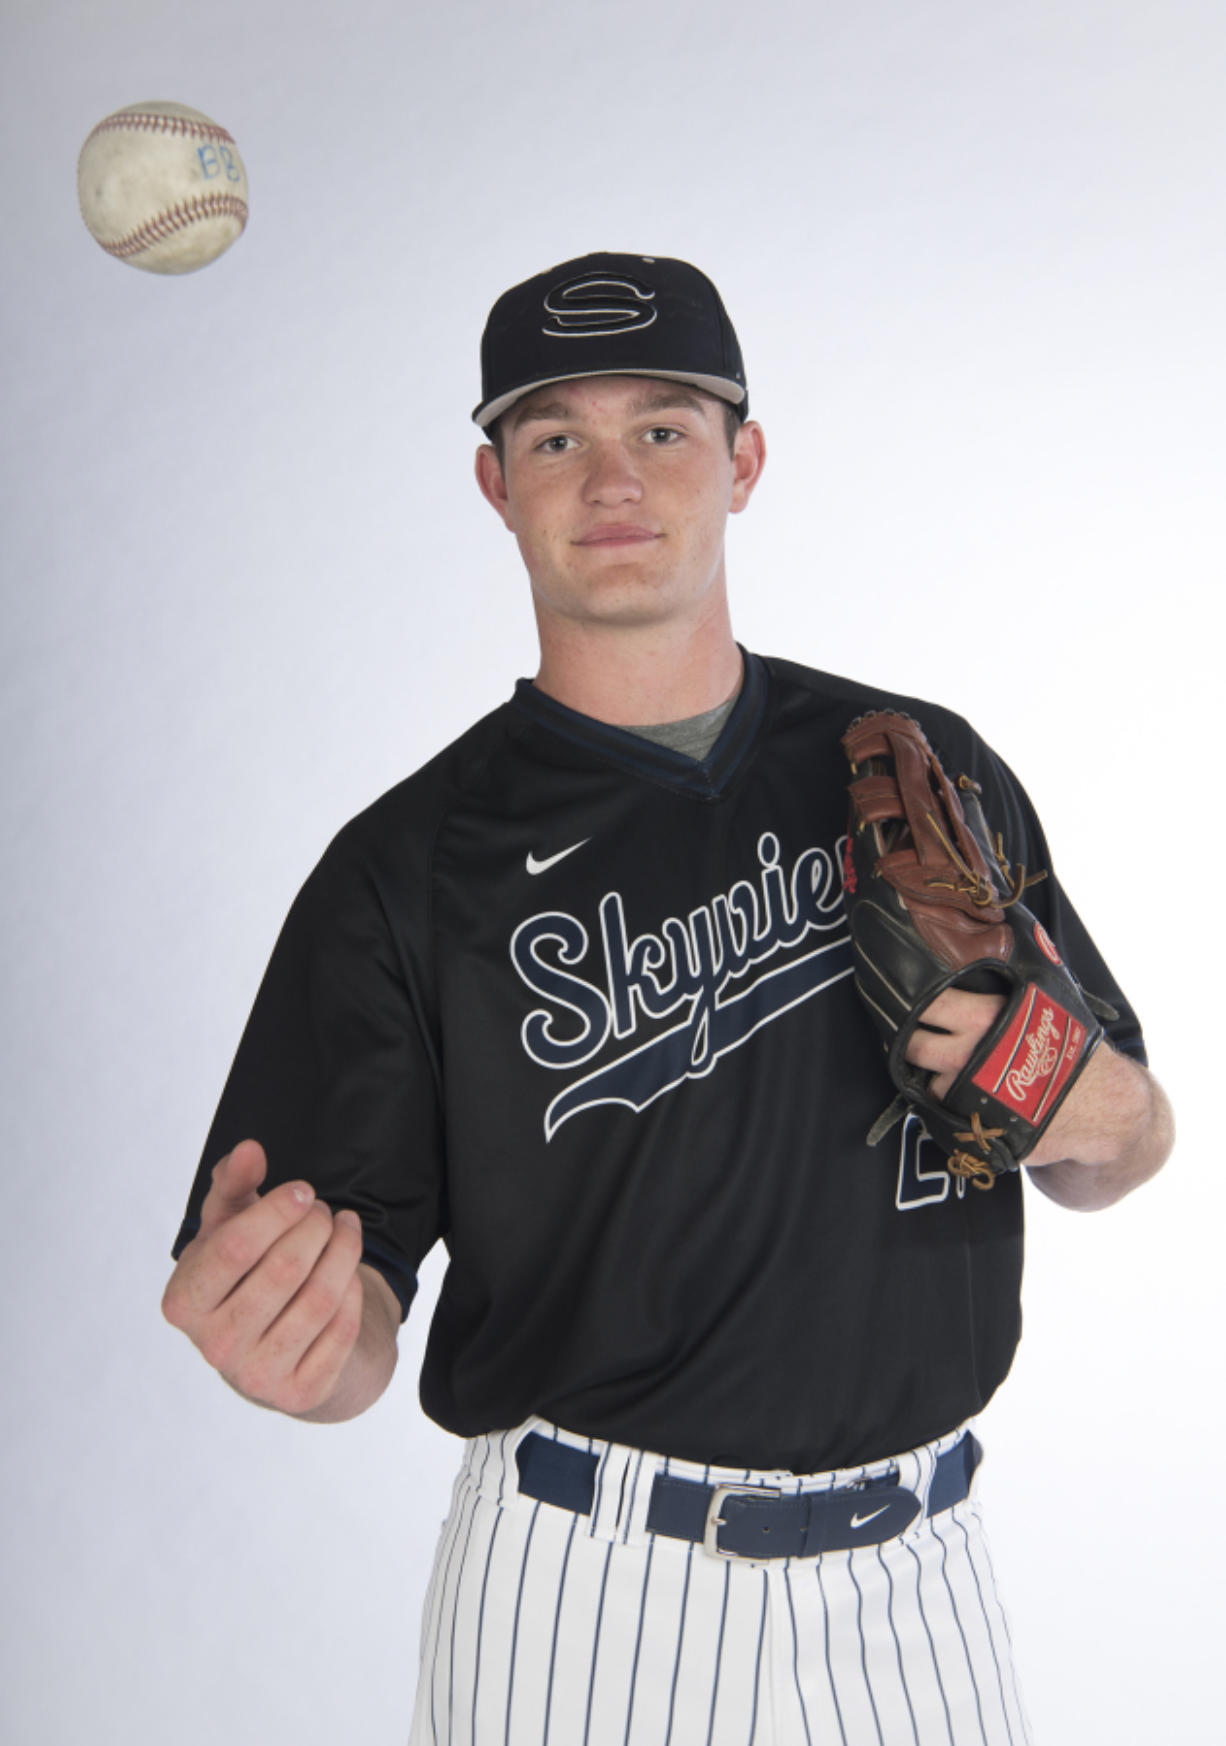 All-region baseball and multi-sport athlete of the year, Brody Barnum of Skyview High School is pictured at The Columbian, Tuesday June 7, 2017. (Ariane Kunze/The Columbian)